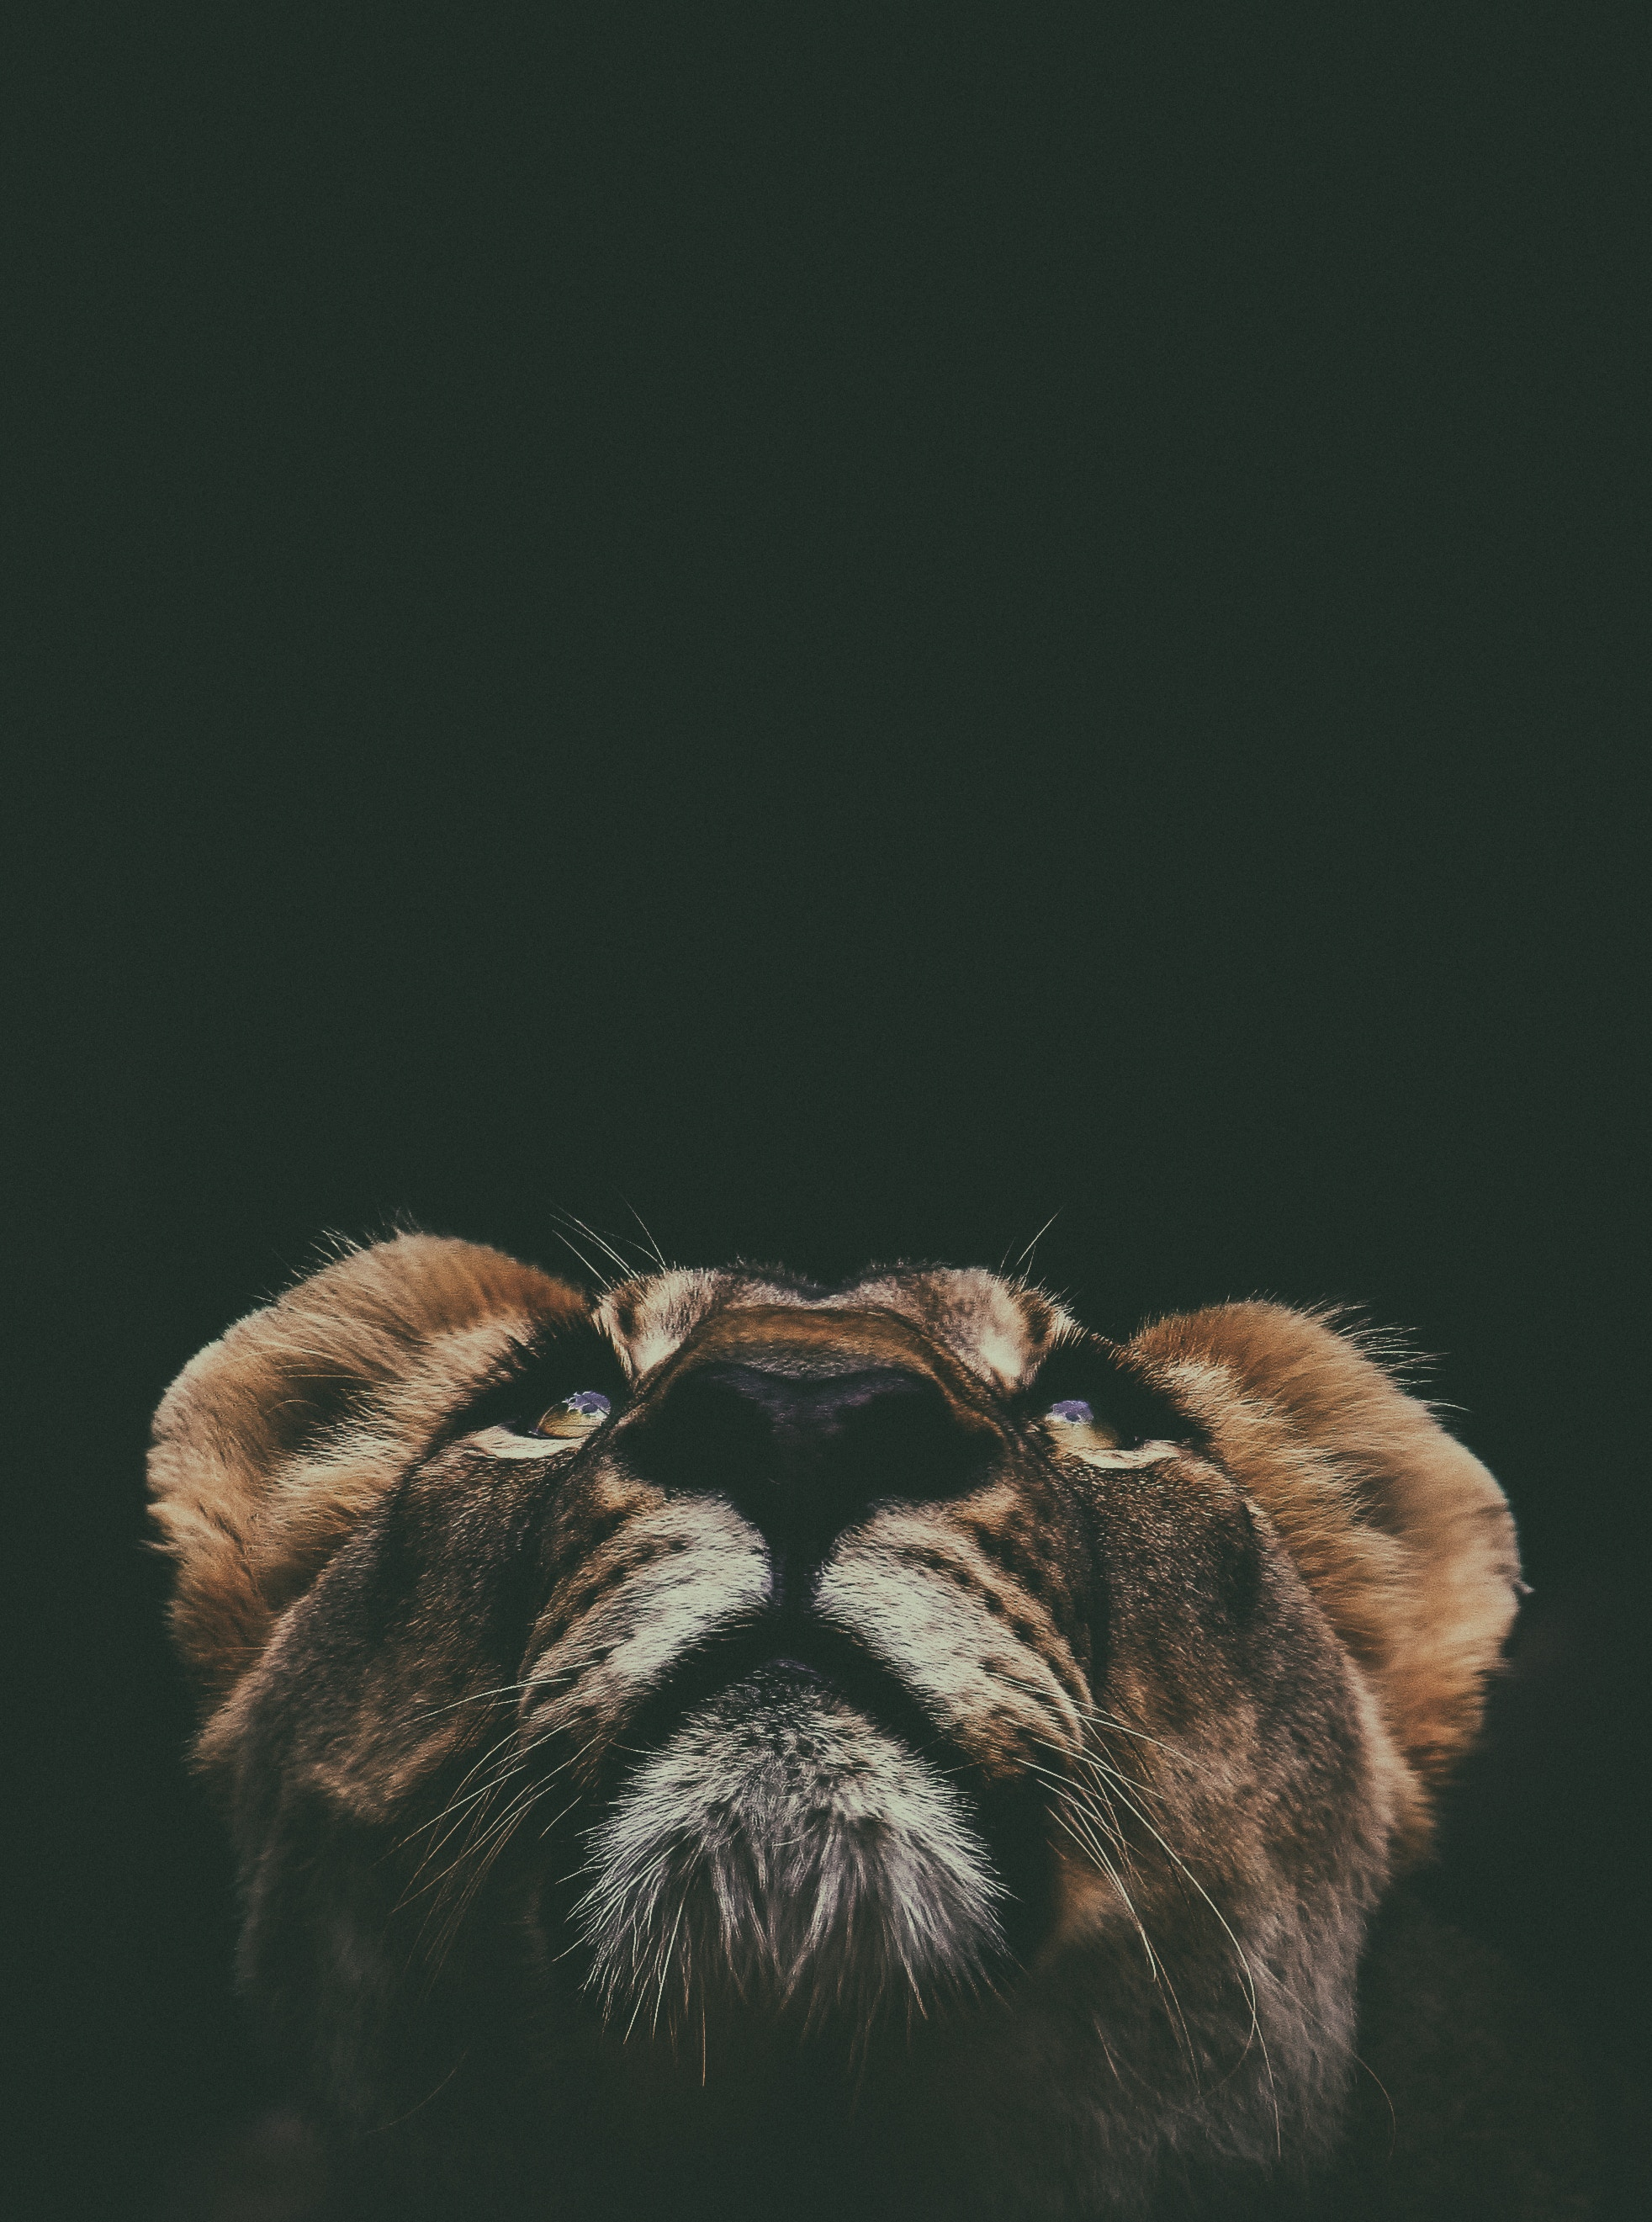 59685 download wallpaper Animals, Up, Top, Muzzle, Lion, Sight, Opinion screensavers and pictures for free